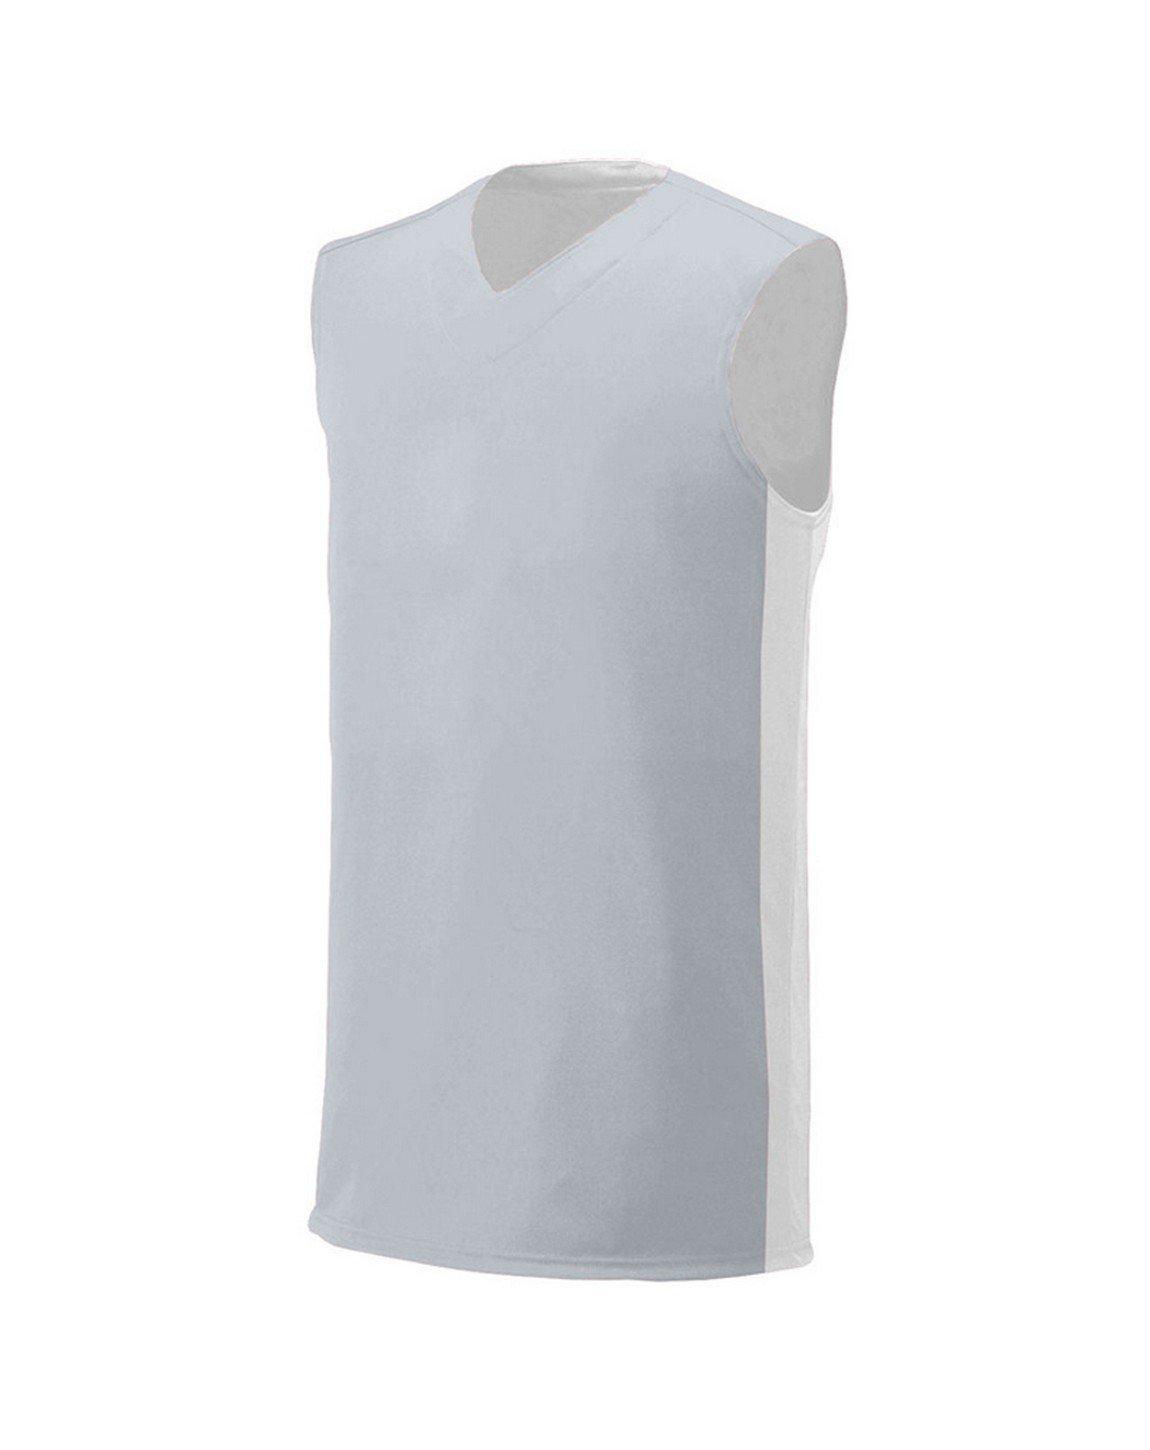 A4 Boy's Reversible Moisture Management Muscle Silver/White